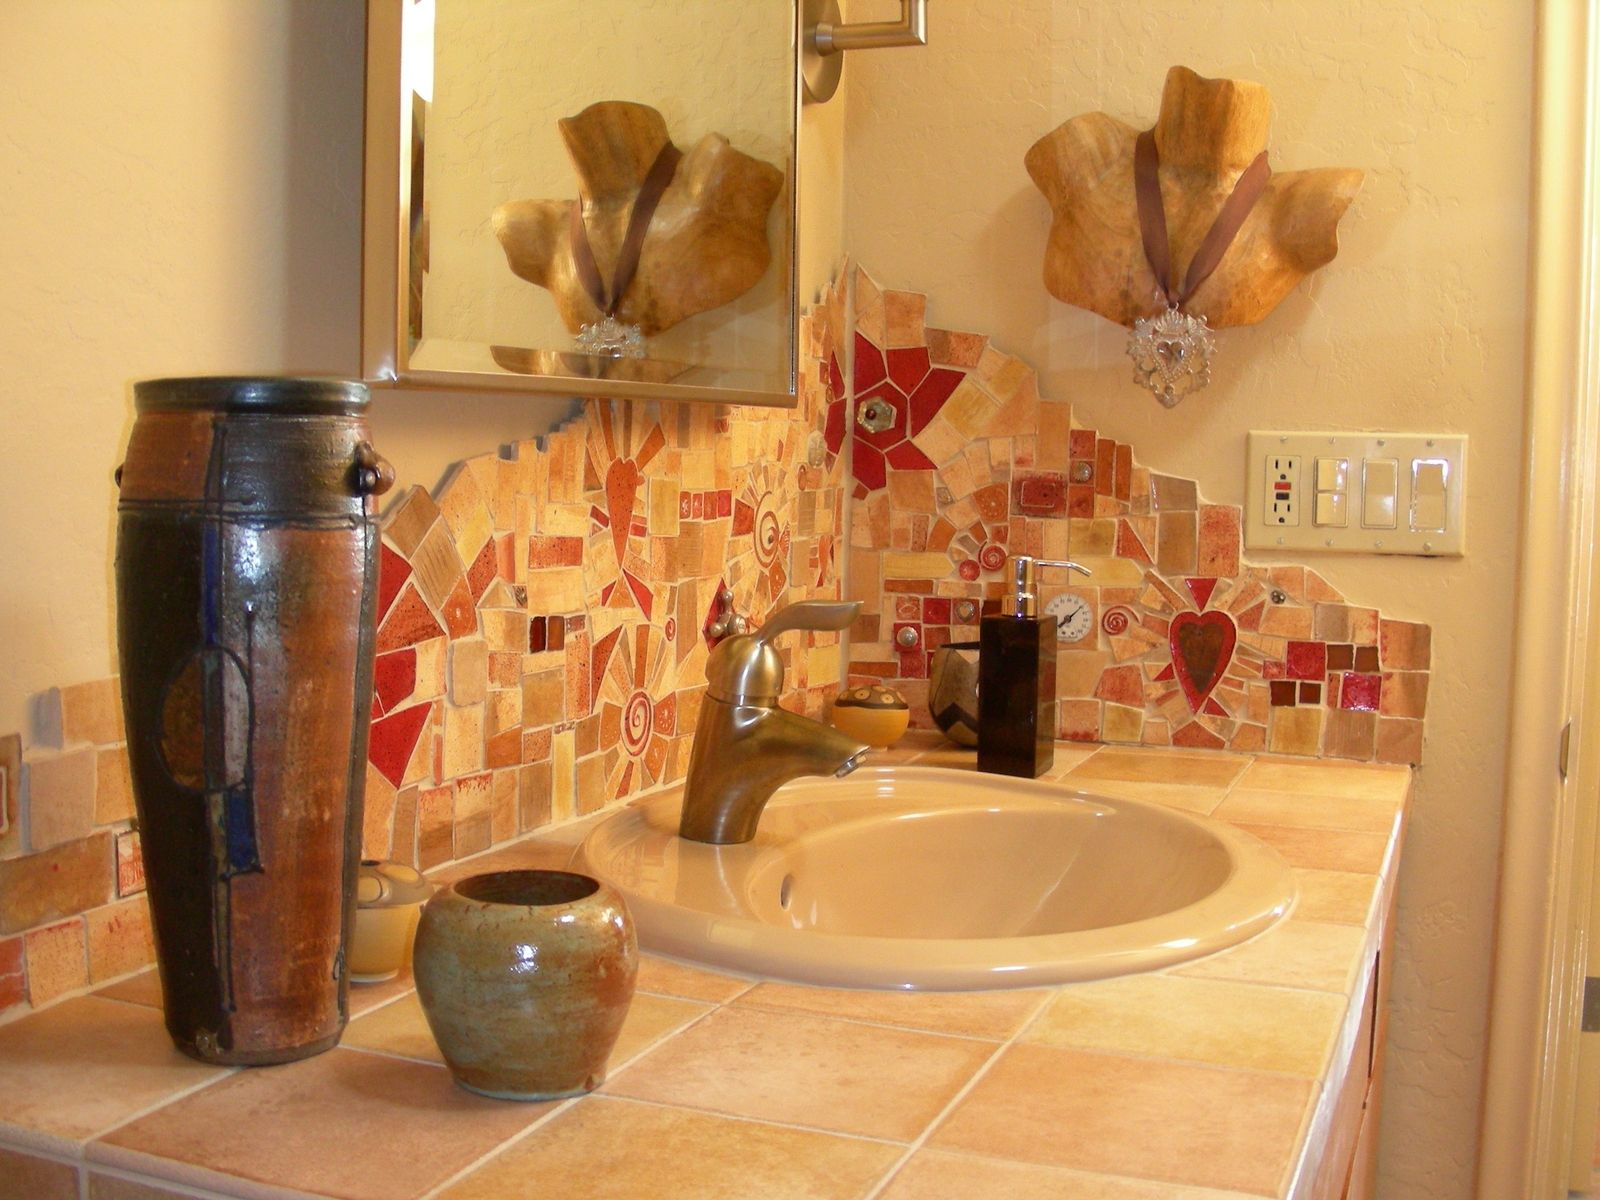 Custom made hand made tile mosaic bathroom backsplash by for Mosaic tile bathroom design